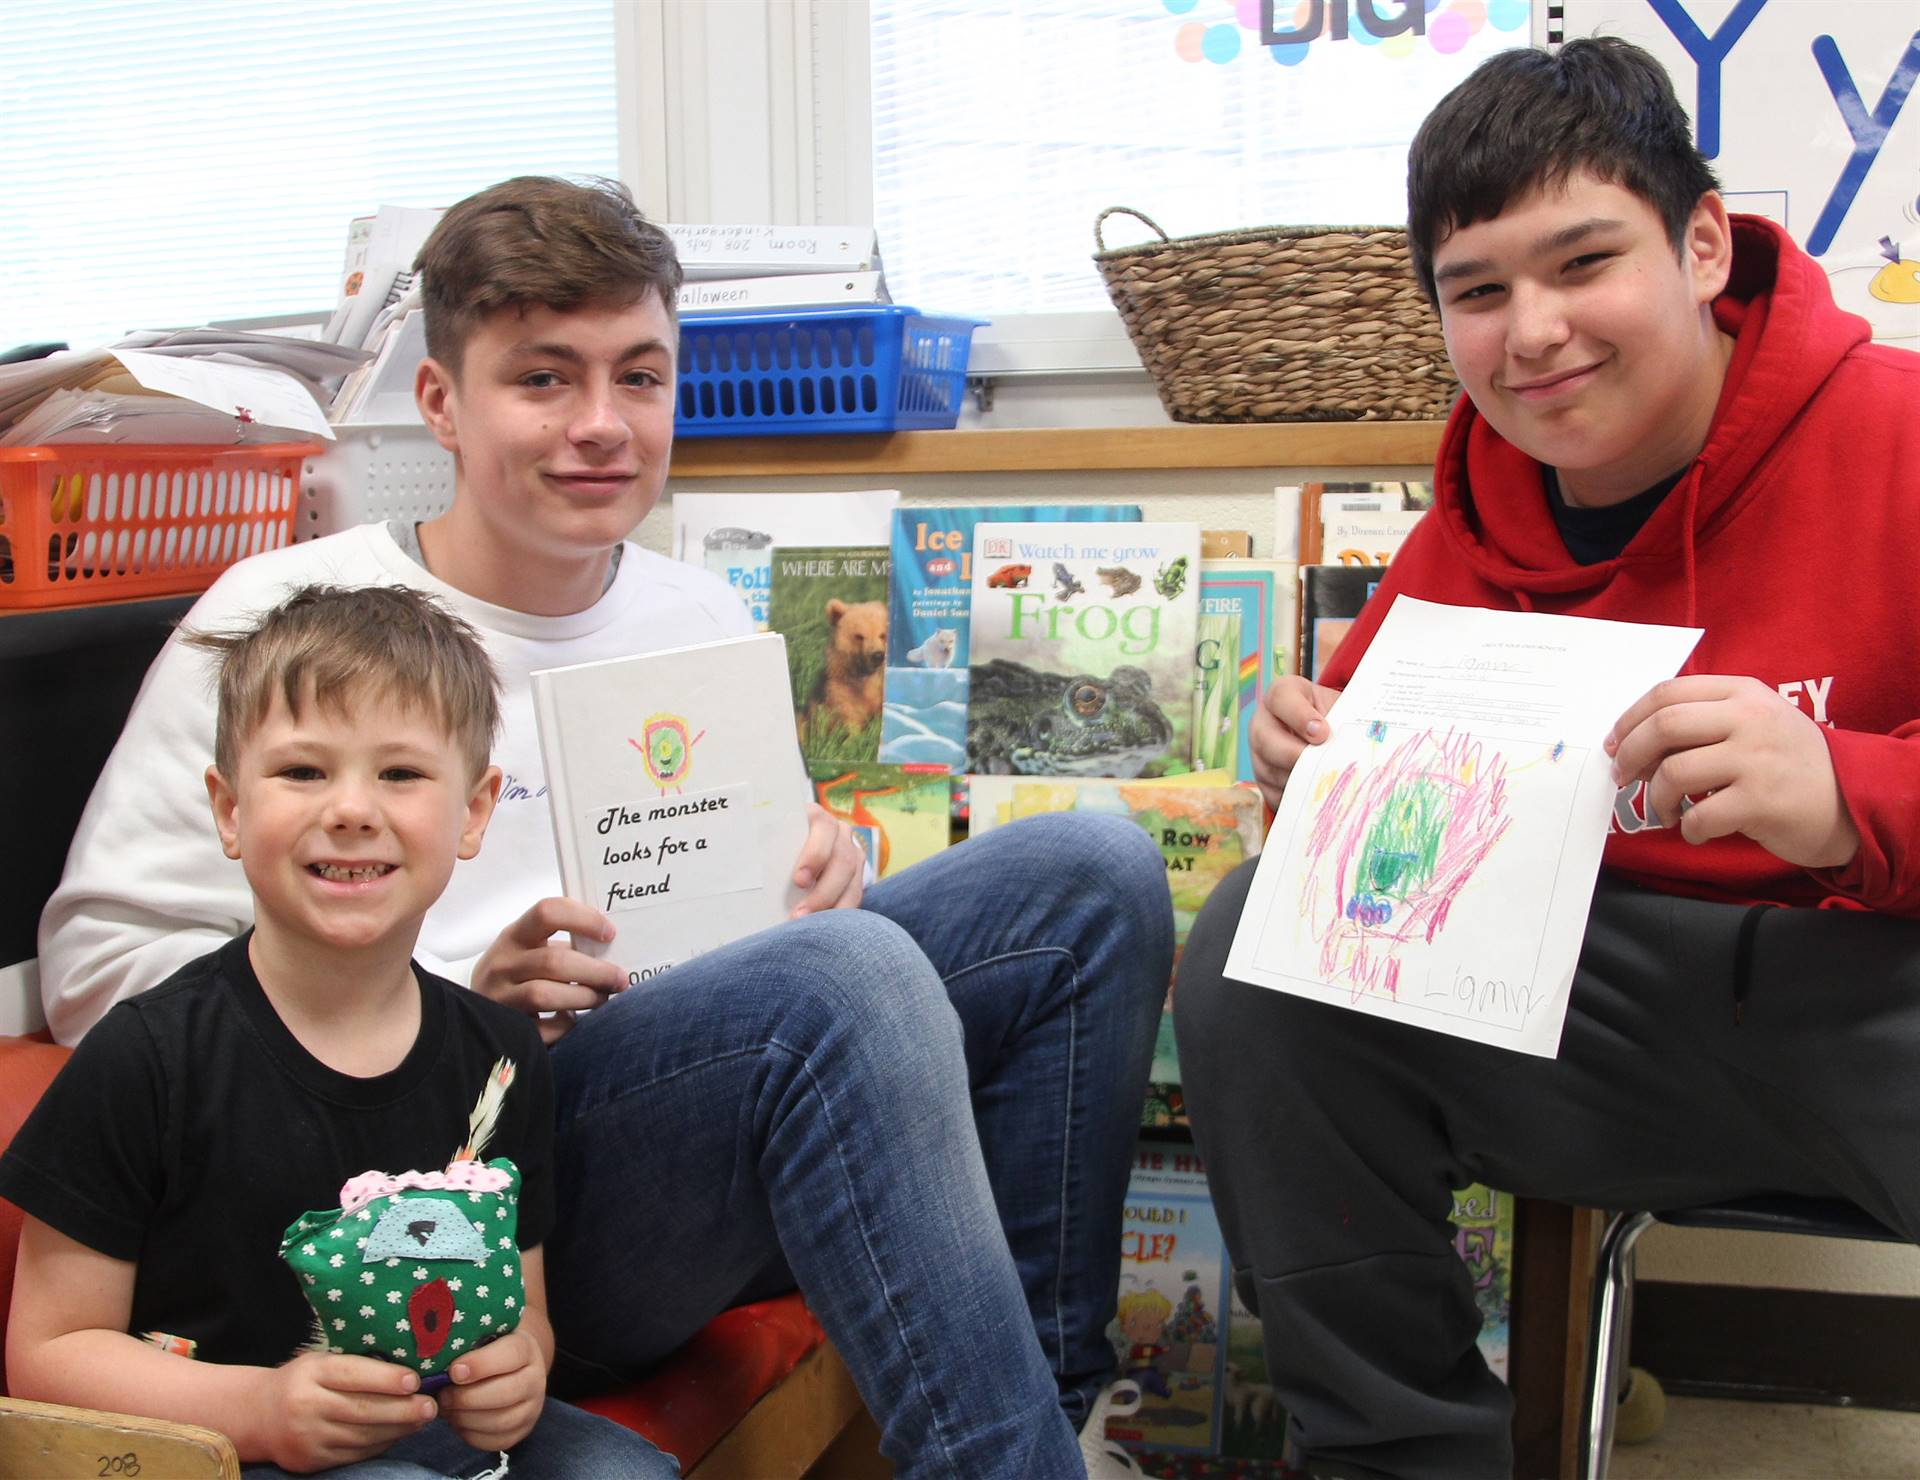 students with books, drawings and sewn monsters 9